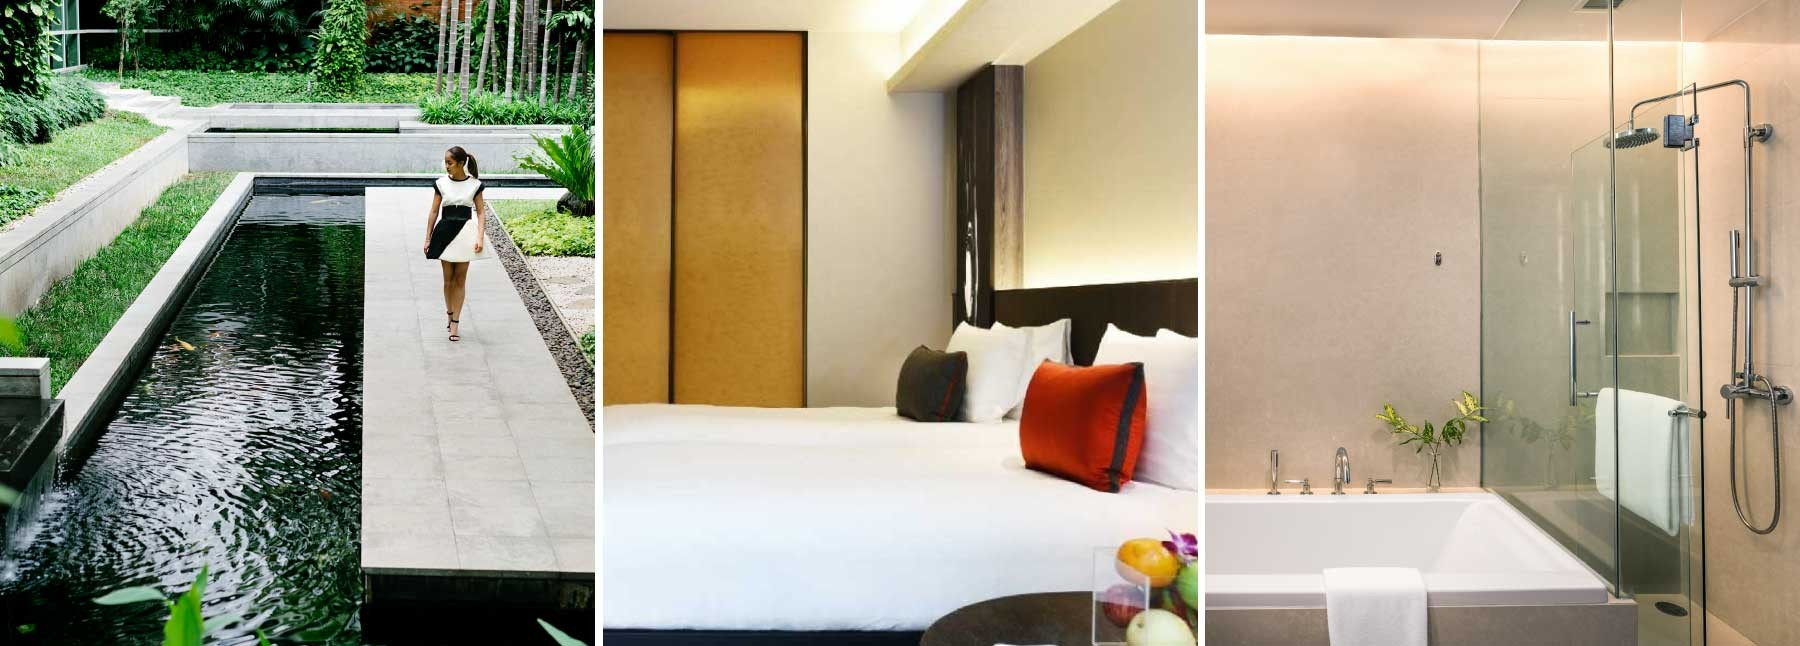 room package in Bangkok